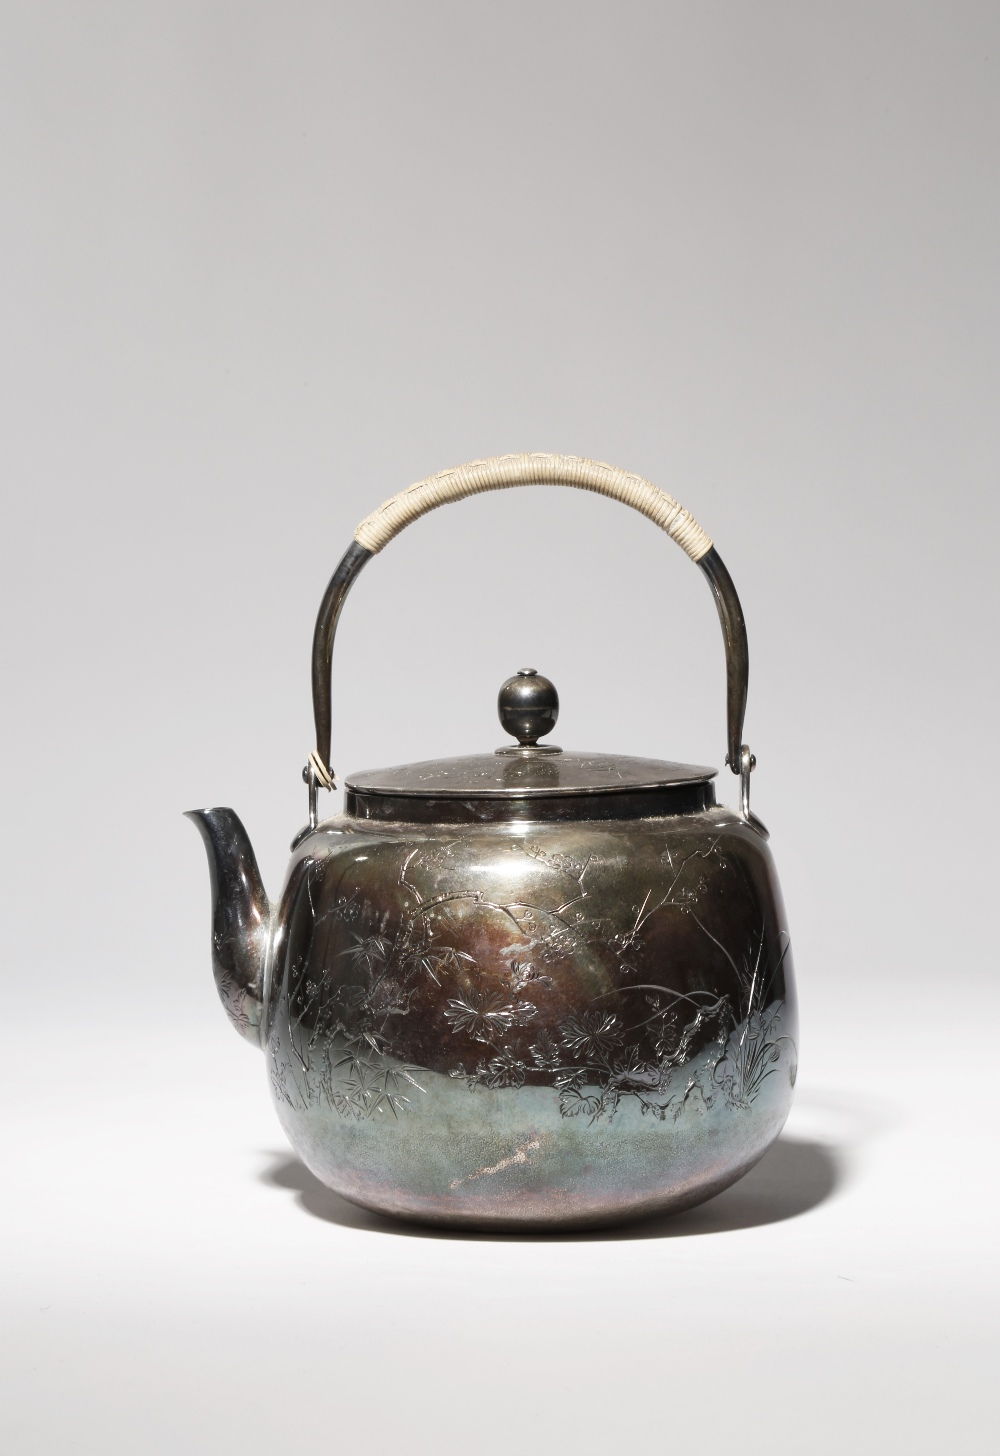 A JAPANESE SILVER TETSUBIN MEIJI OR TAISHO PERIOD, 19TH OR 20TH CENTURY The bulbous body decorated